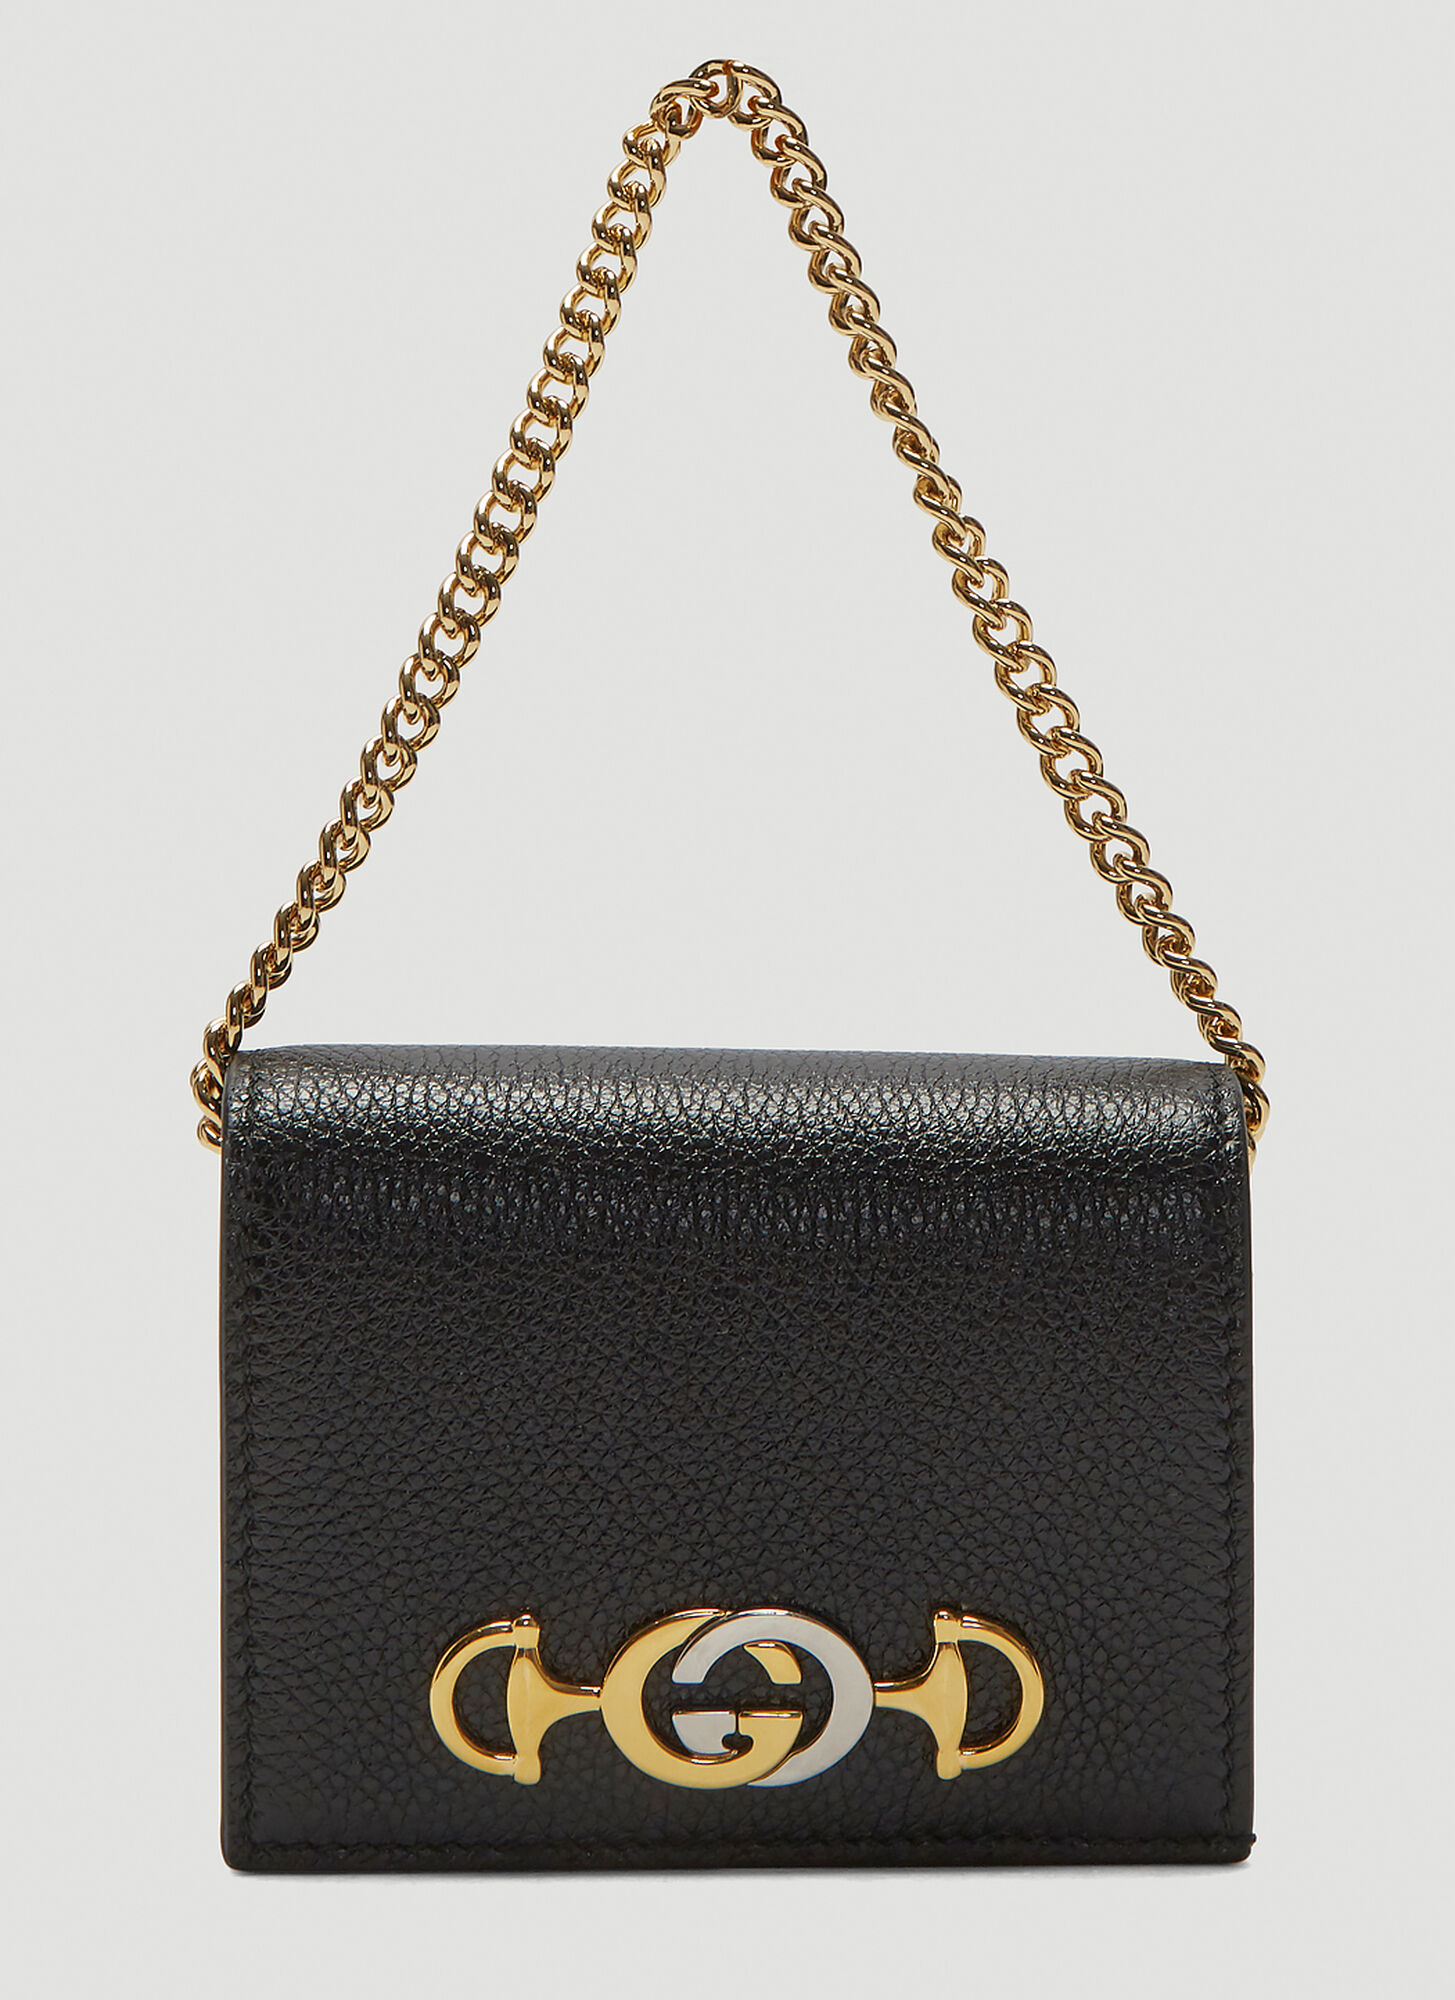 Gucci Zumi Leather Card Case in Black